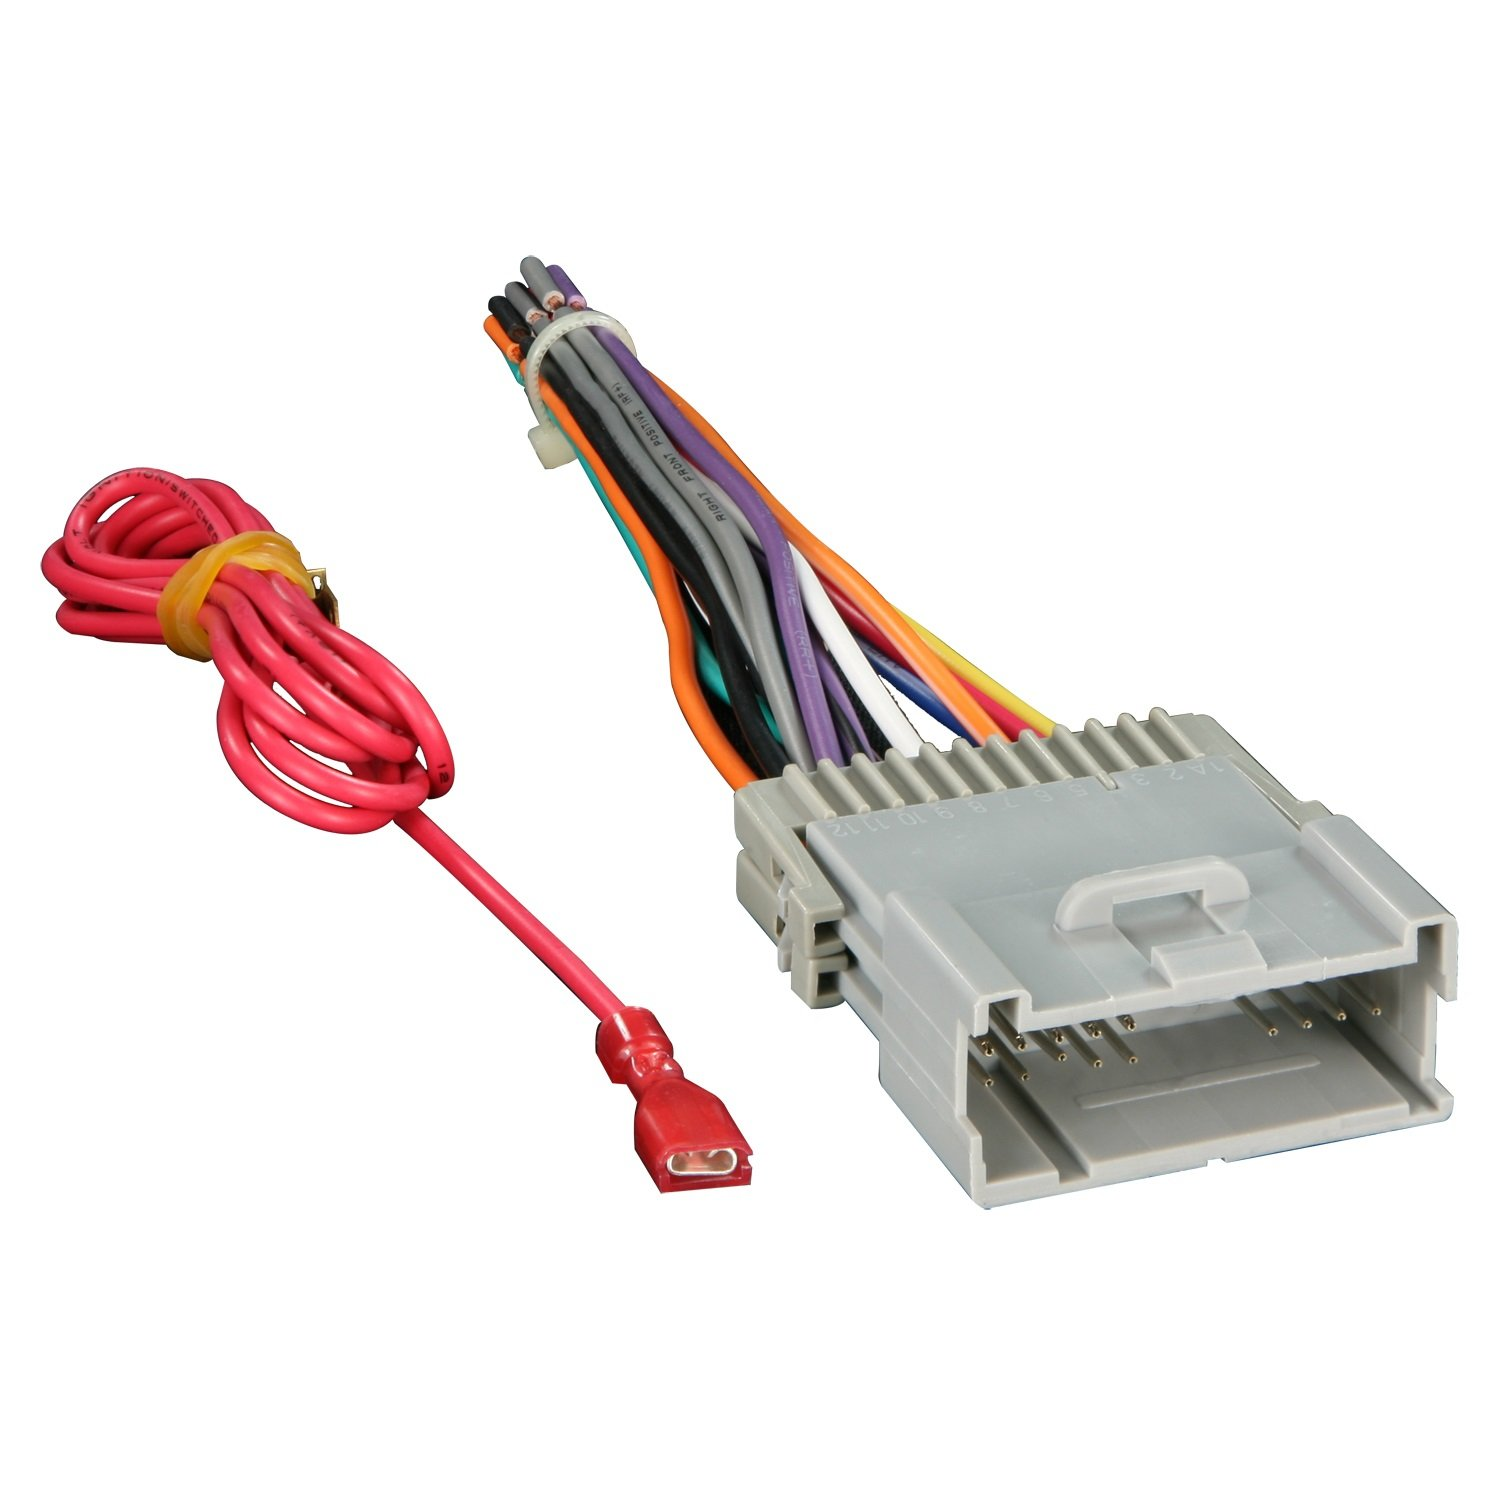 61eewxp9orL._SL1500_ amazon com metra 70 2003 radio wiring harness for gm 98 08 how to connect a wire harness for car stereo at cos-gaming.co